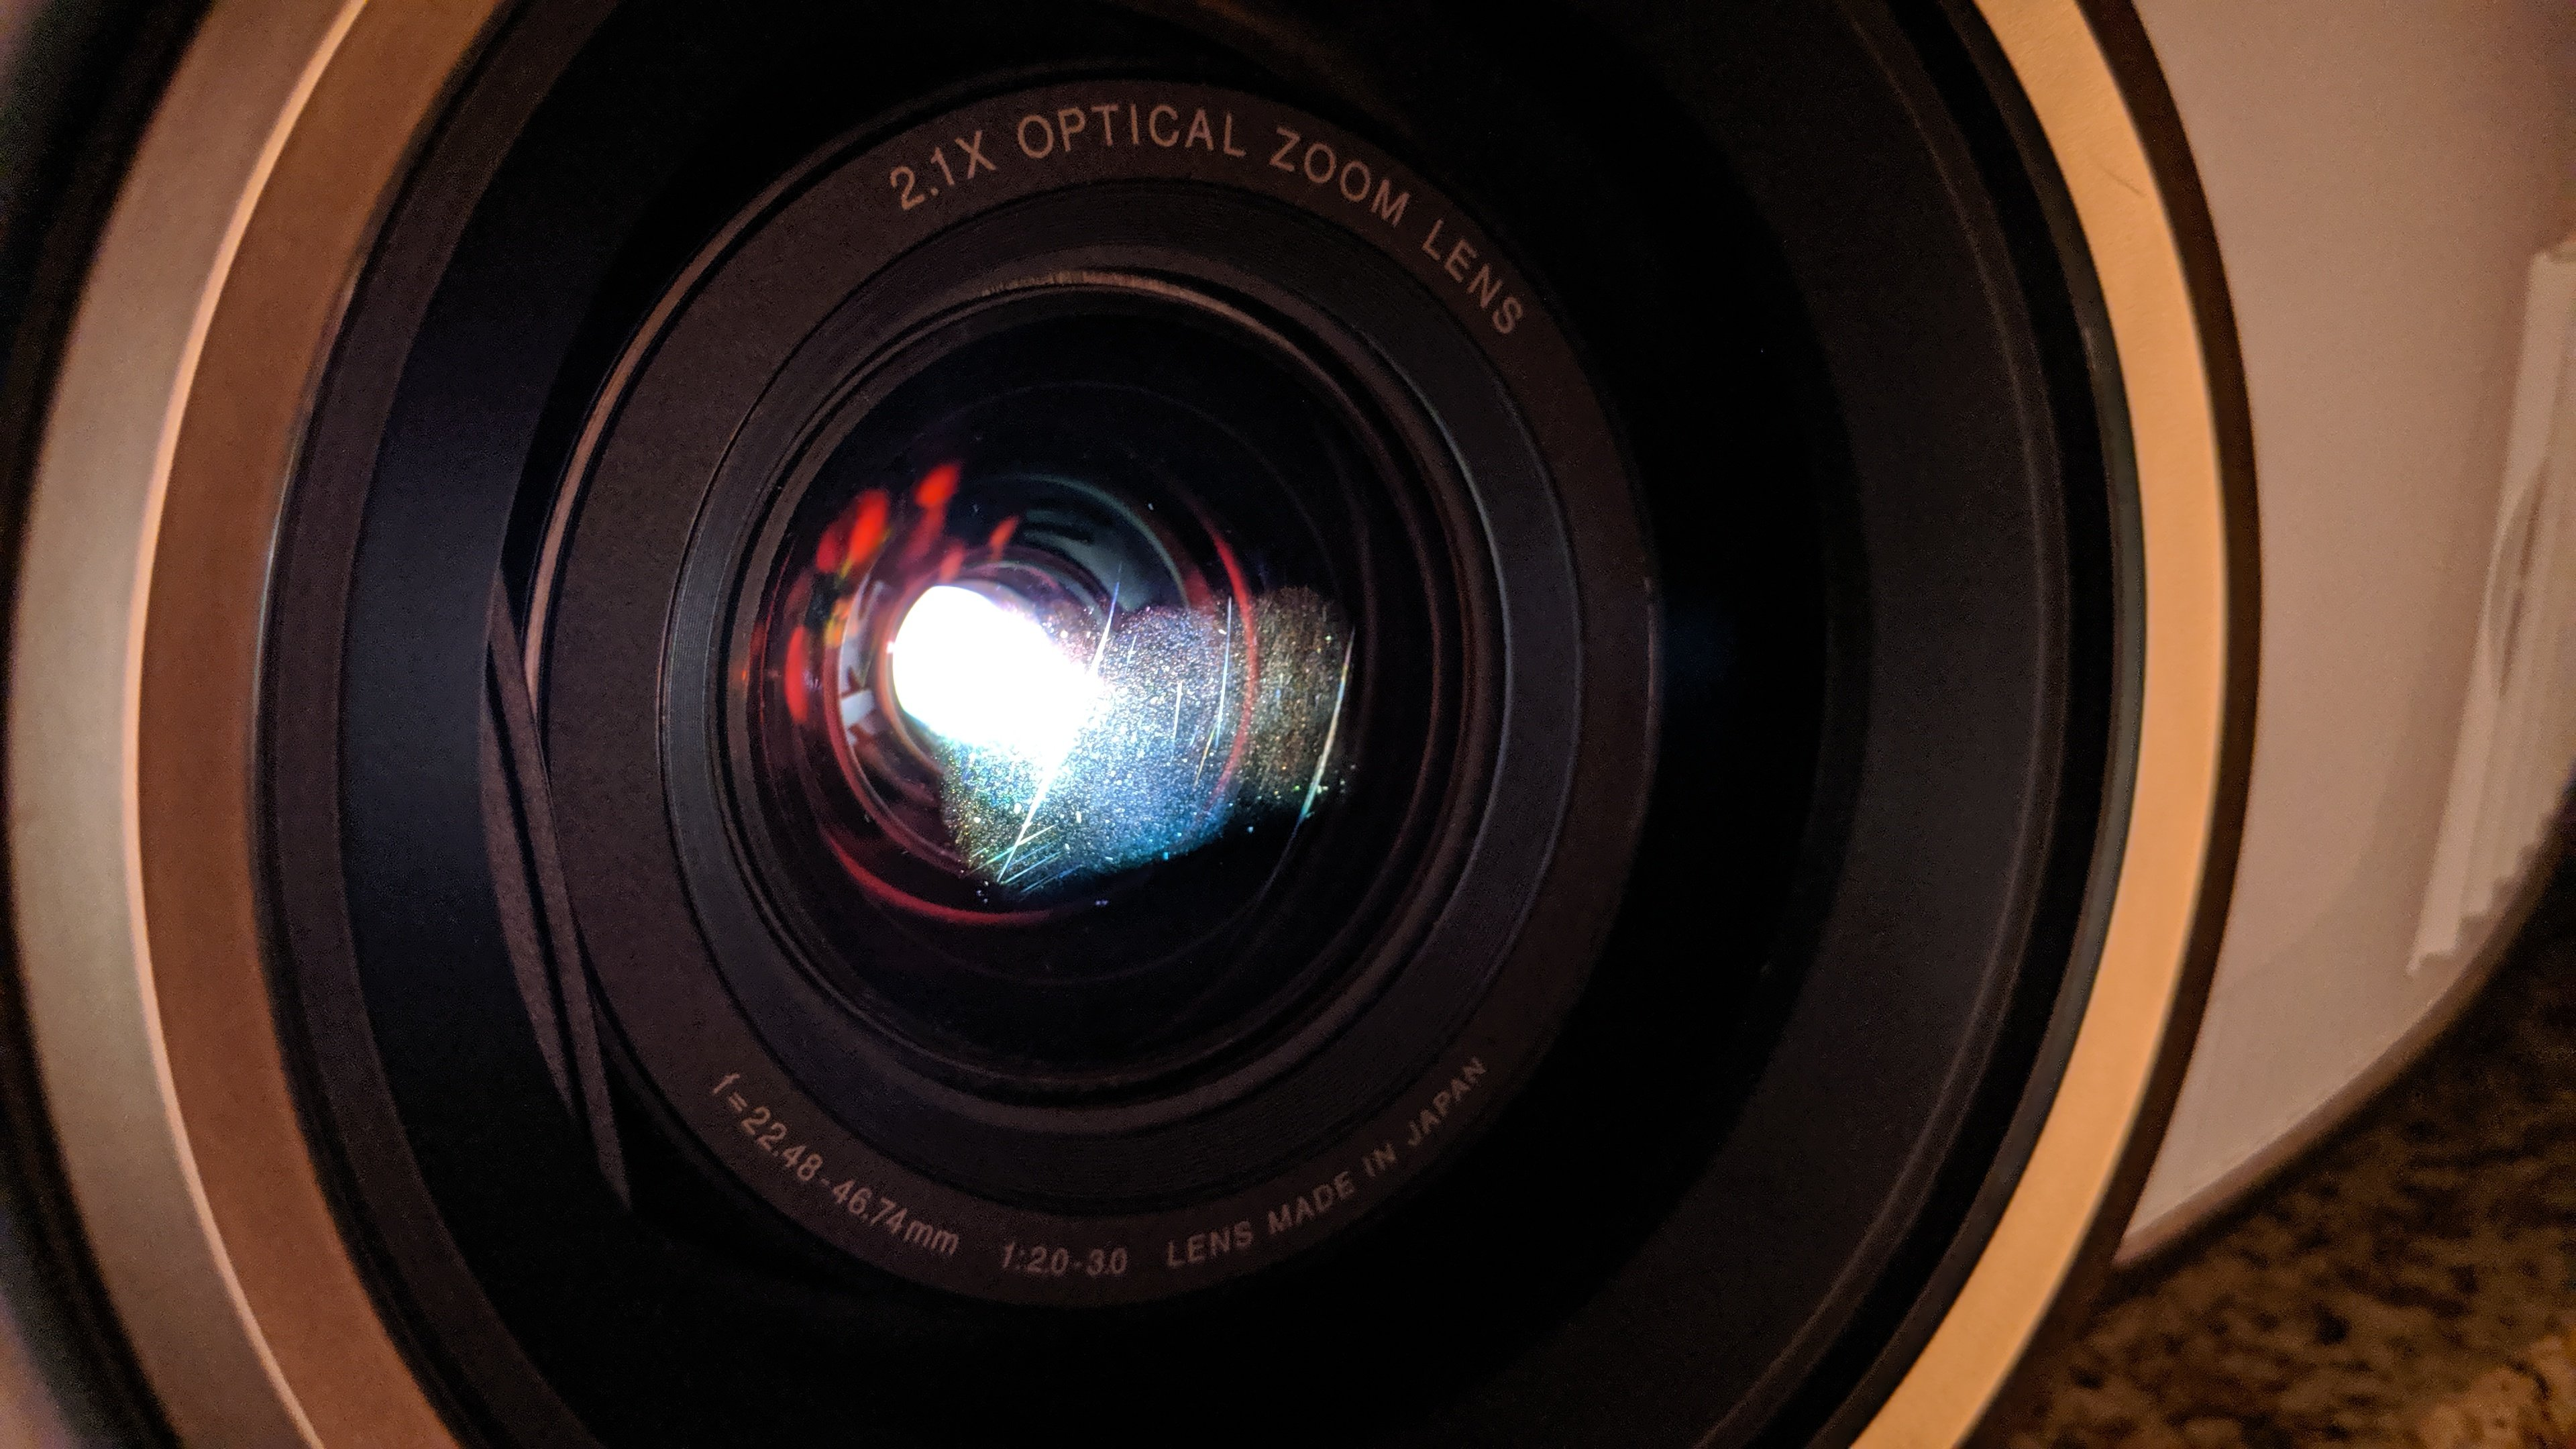 Epson 5040 front lens scratch or scuff - removal? | AVS Forum